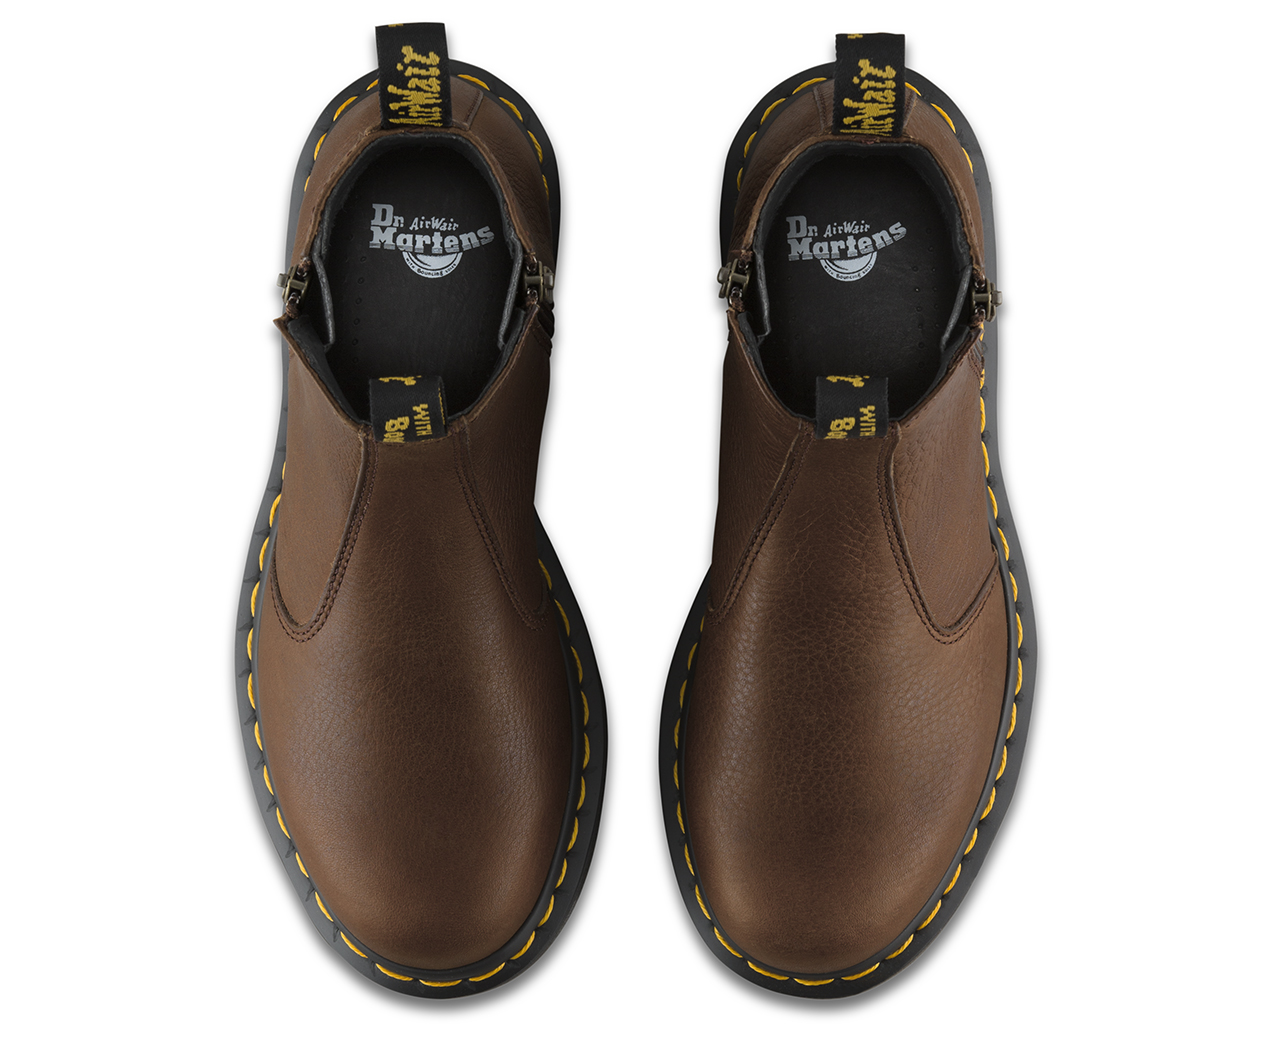 2976 W Zips Womens Boots Dr Martens Official Site